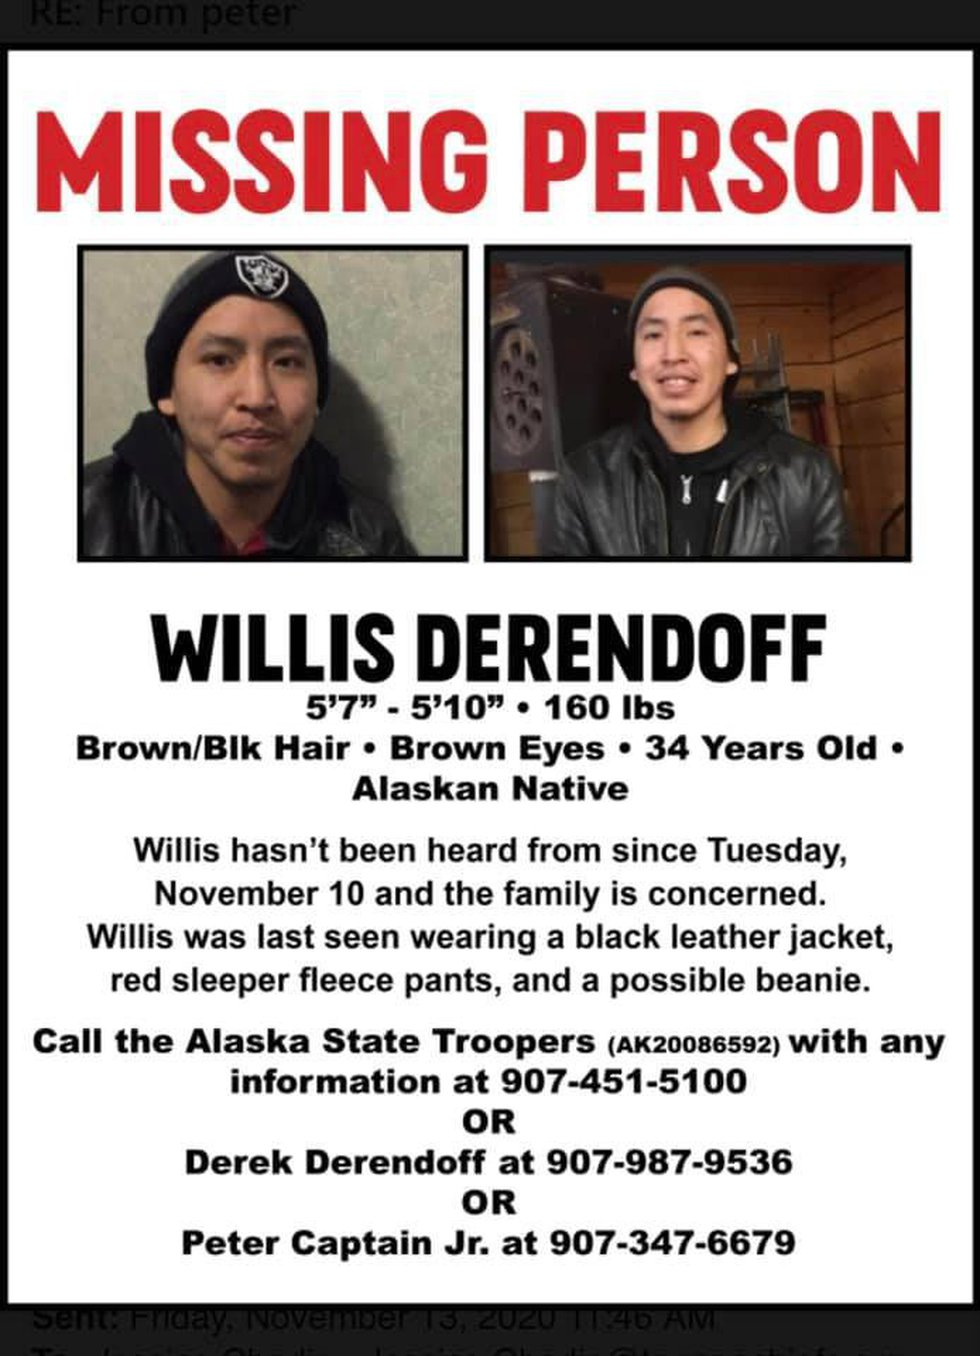 There is a $12,000 reward for information on Willis Derendoff's disappearance. Tips can also...